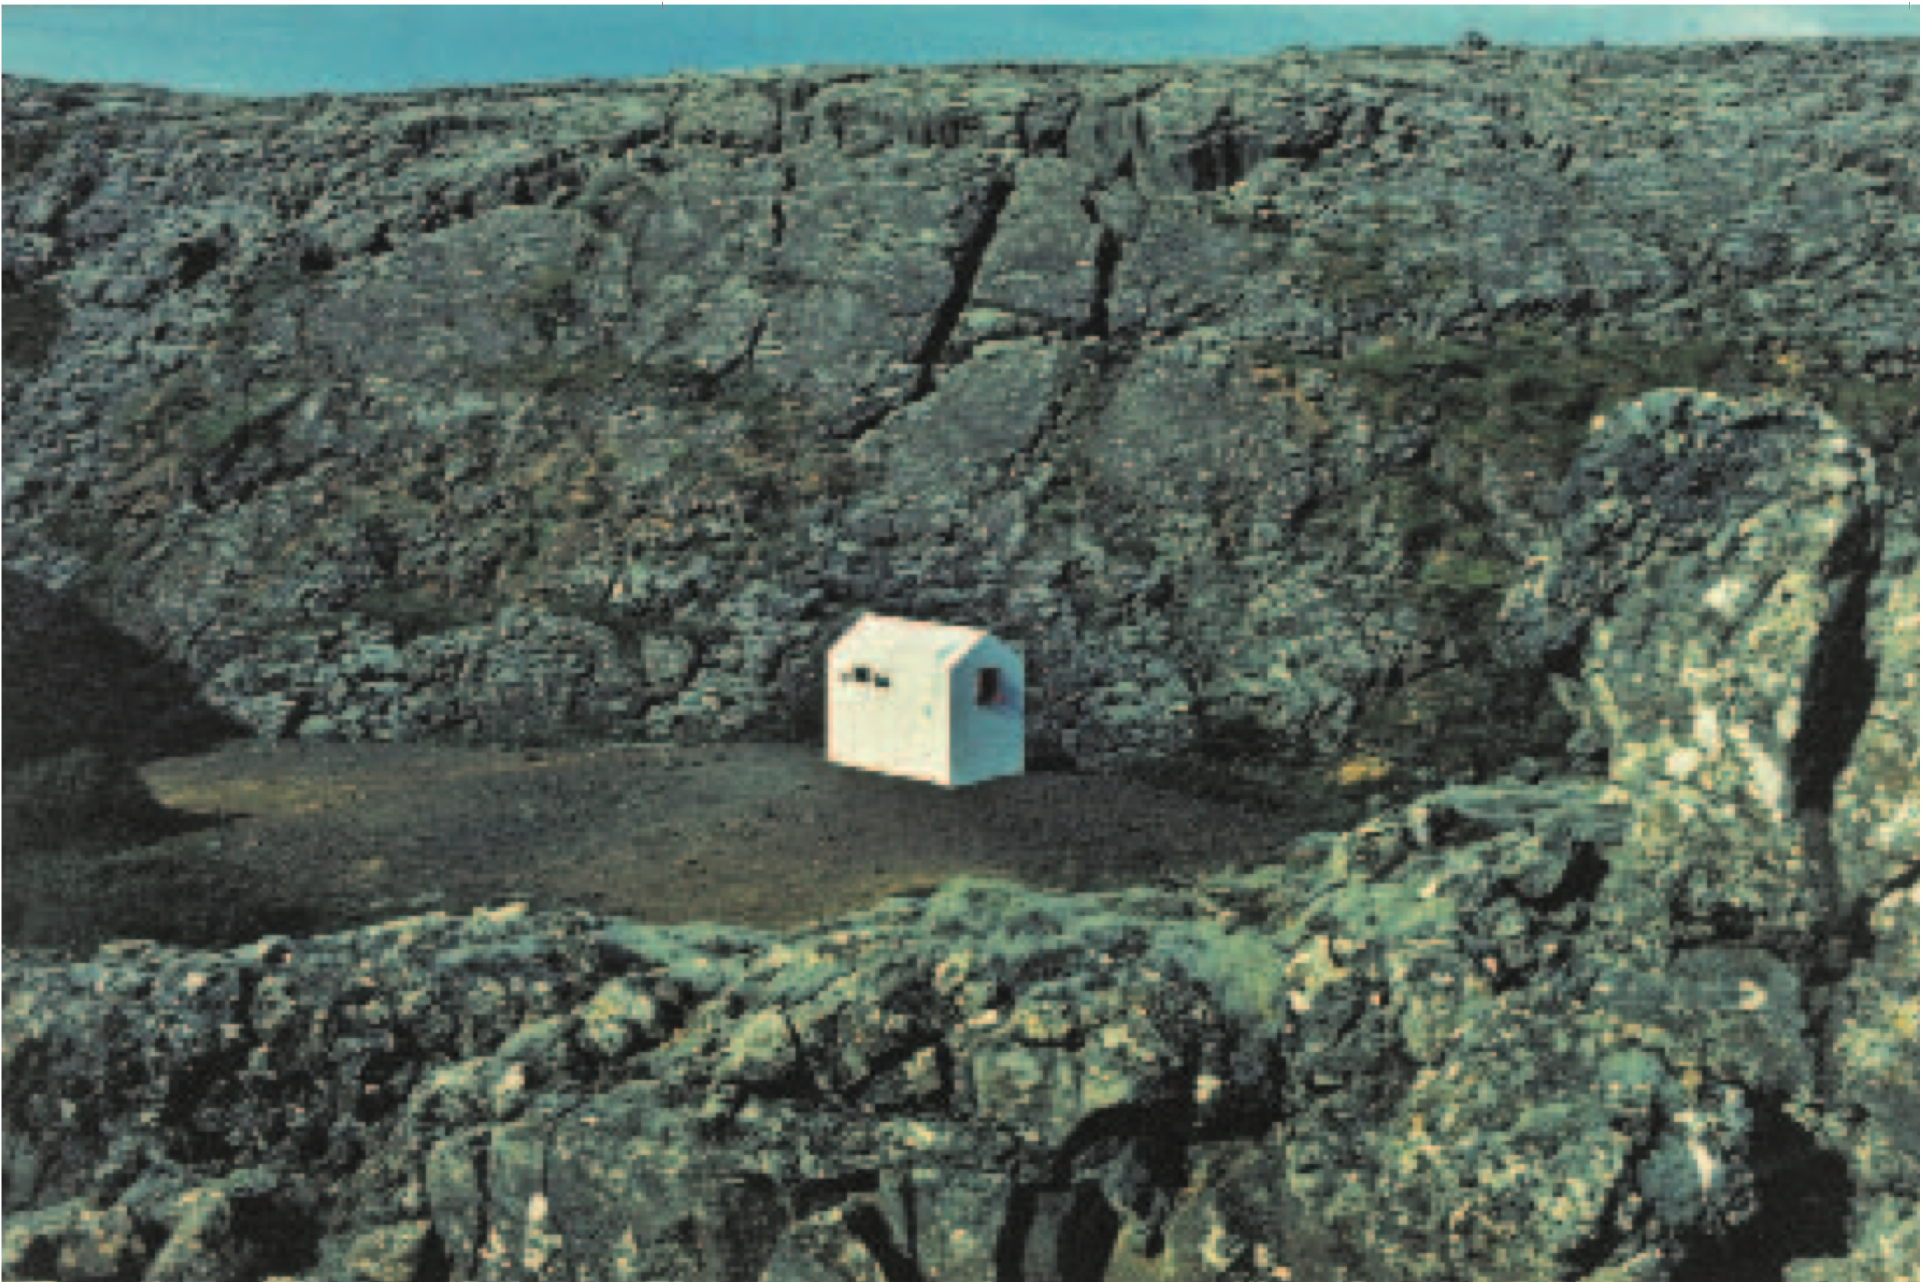 HREINN FRIÐFINNSSON House Project, First House, 1974 Mixed media. Courtesy of i8 Gallery.